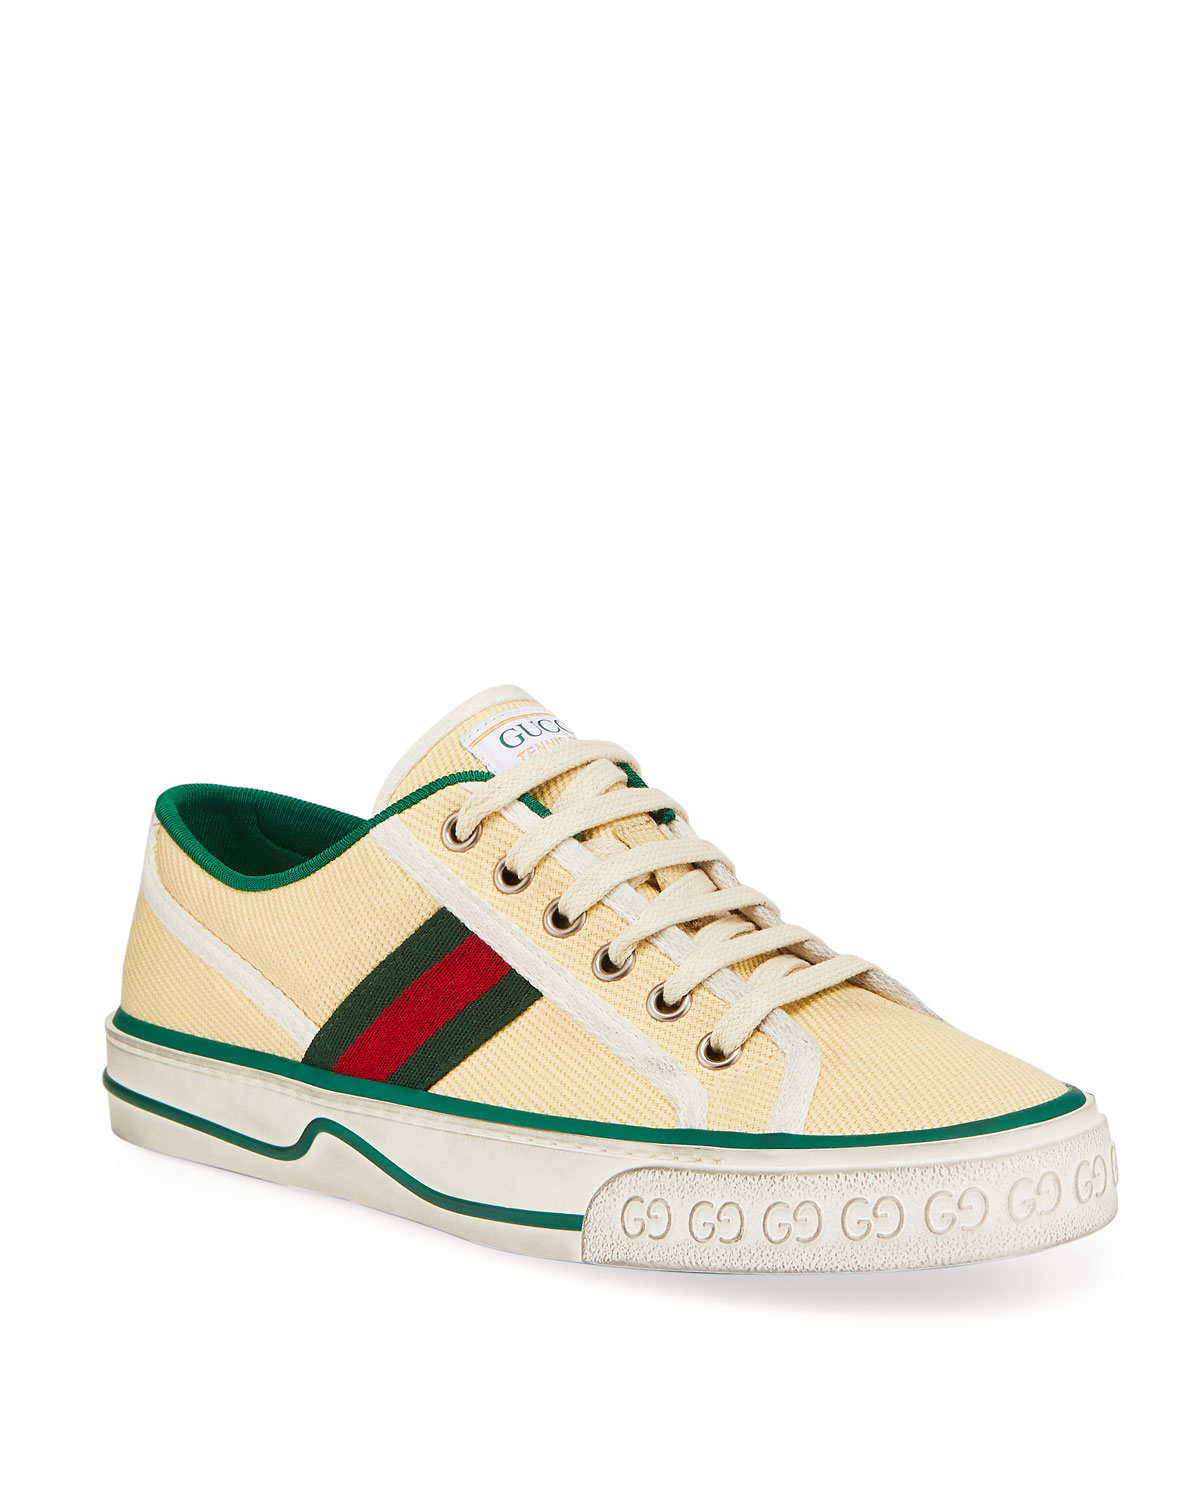 Gucci Vulcan 78 Tweed Web Strap Tennis Sneakers